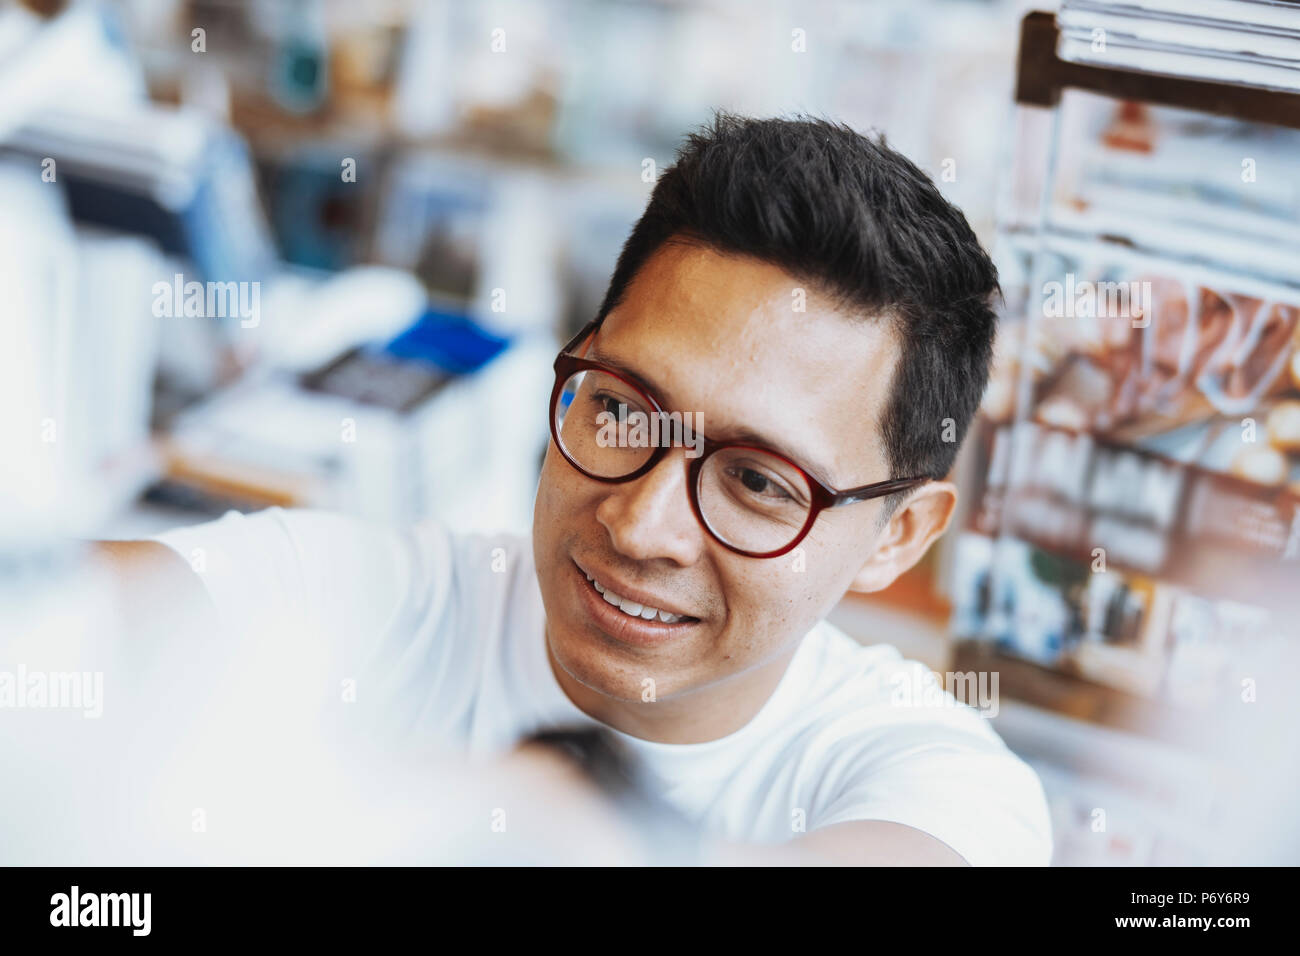 Young atrractive spectacled man choosing book on a book shelf. - Stock Image